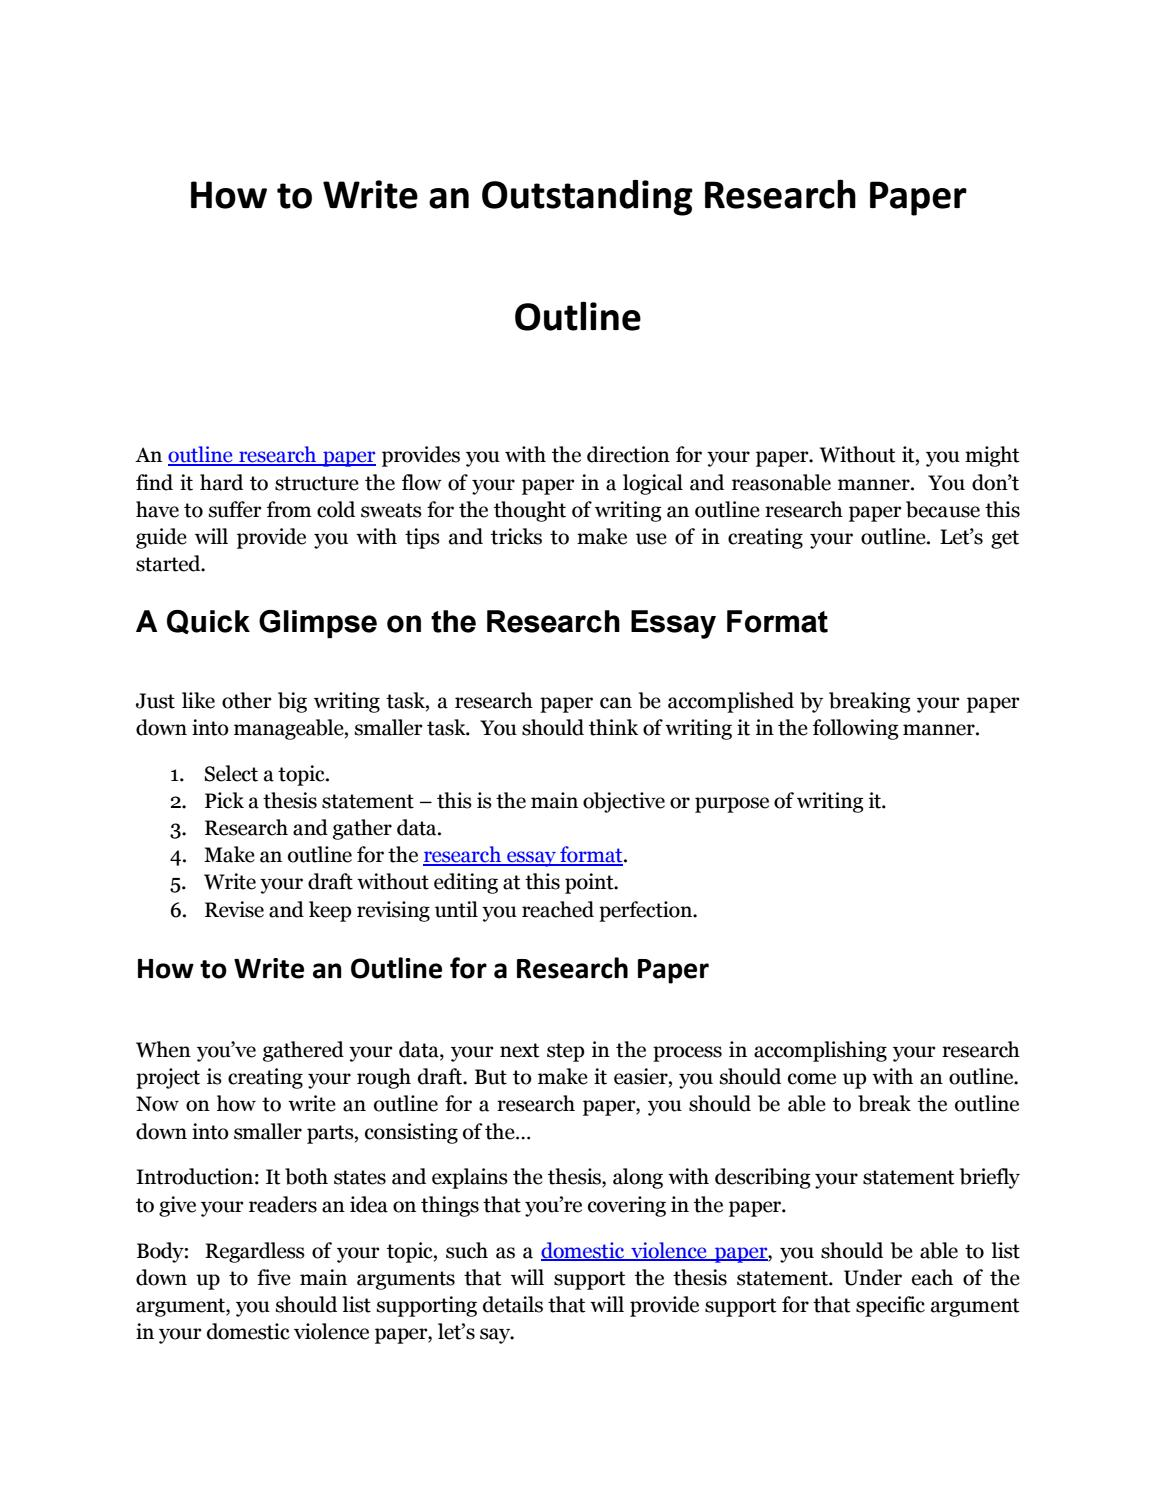 Writing An Impressive Outline Research Paper By ResearchPaperOutline